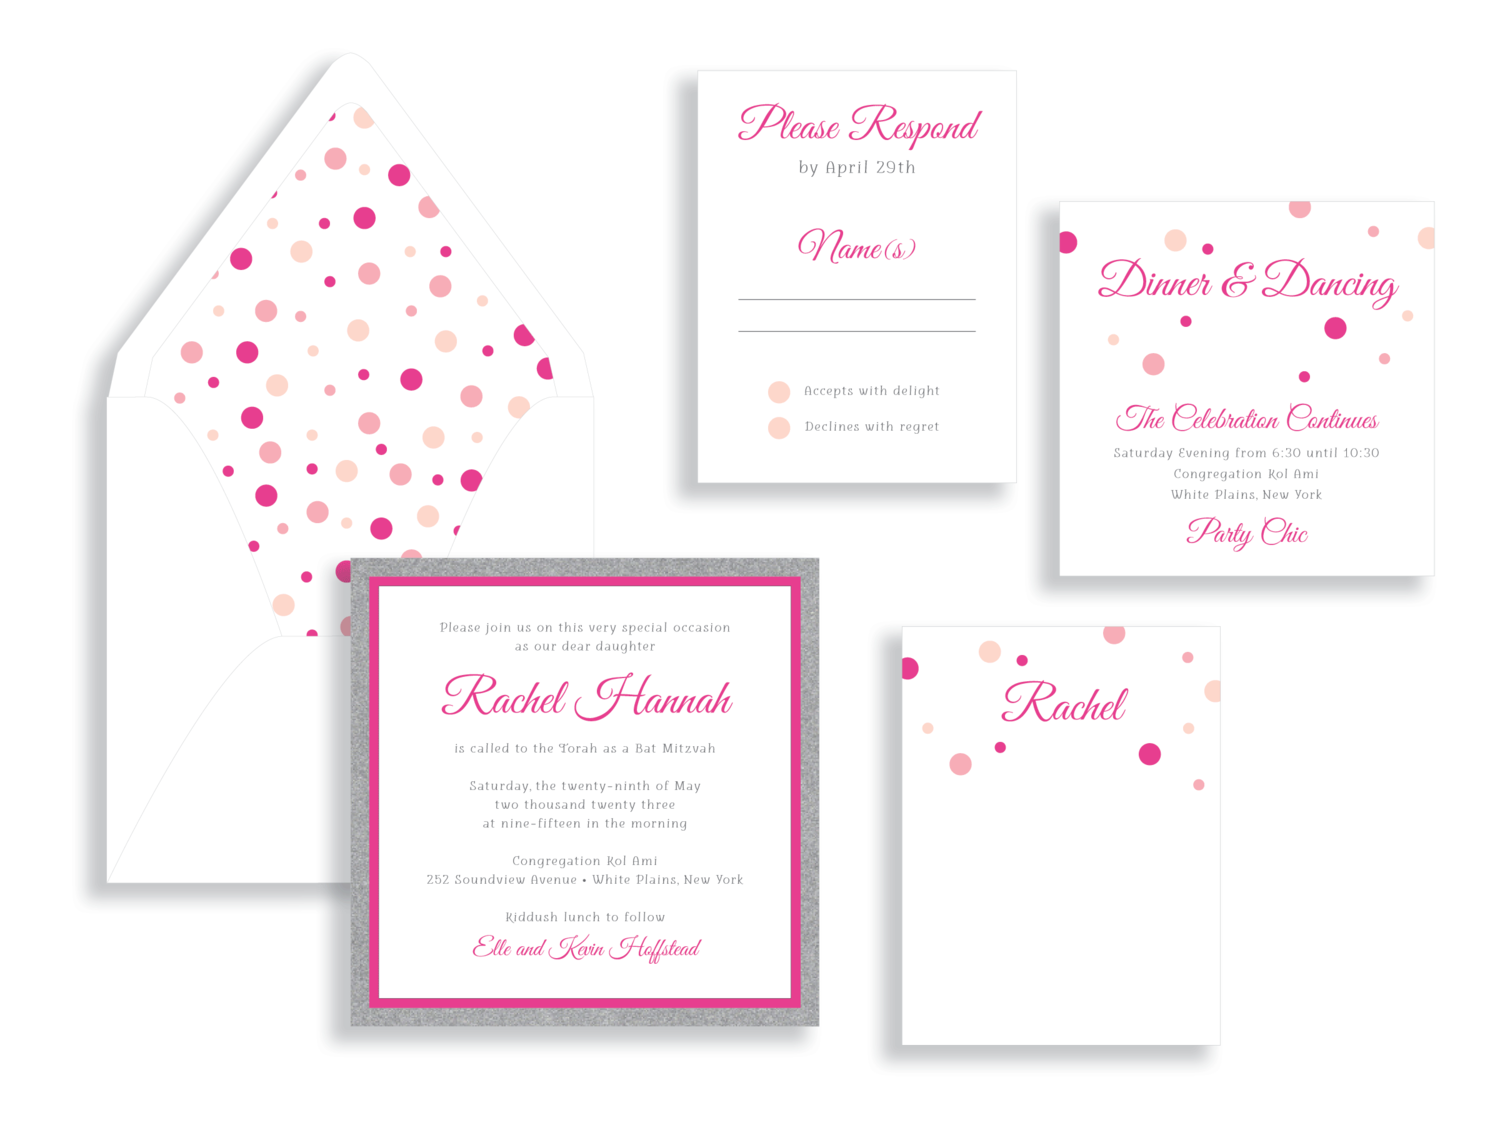 Rachel polka dot Bat Mitzvah invitation in pink and blush.  Bat Mitzvah invitations Northern Virginia Fairfax.